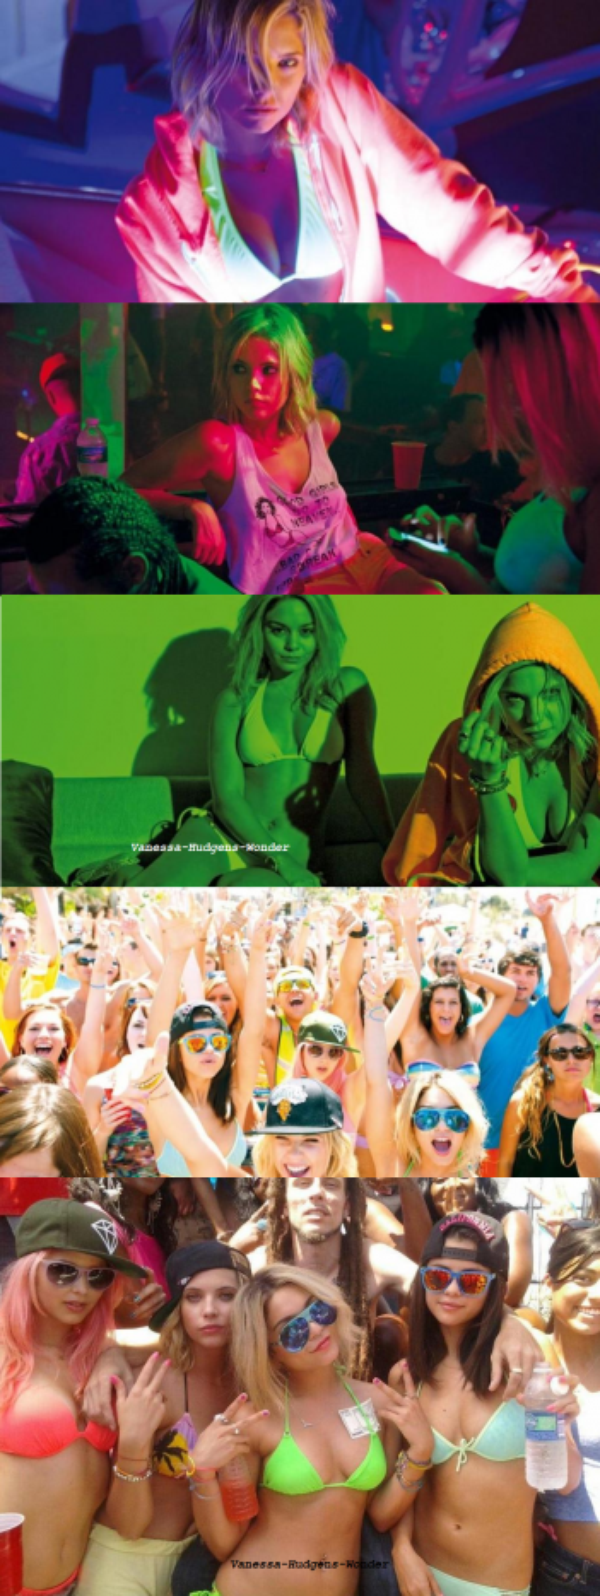 Selena Gomez : Vanessa Hudgens, Ashley Benson, de nouvelles photos encore plus sexy de Spring Breakers !